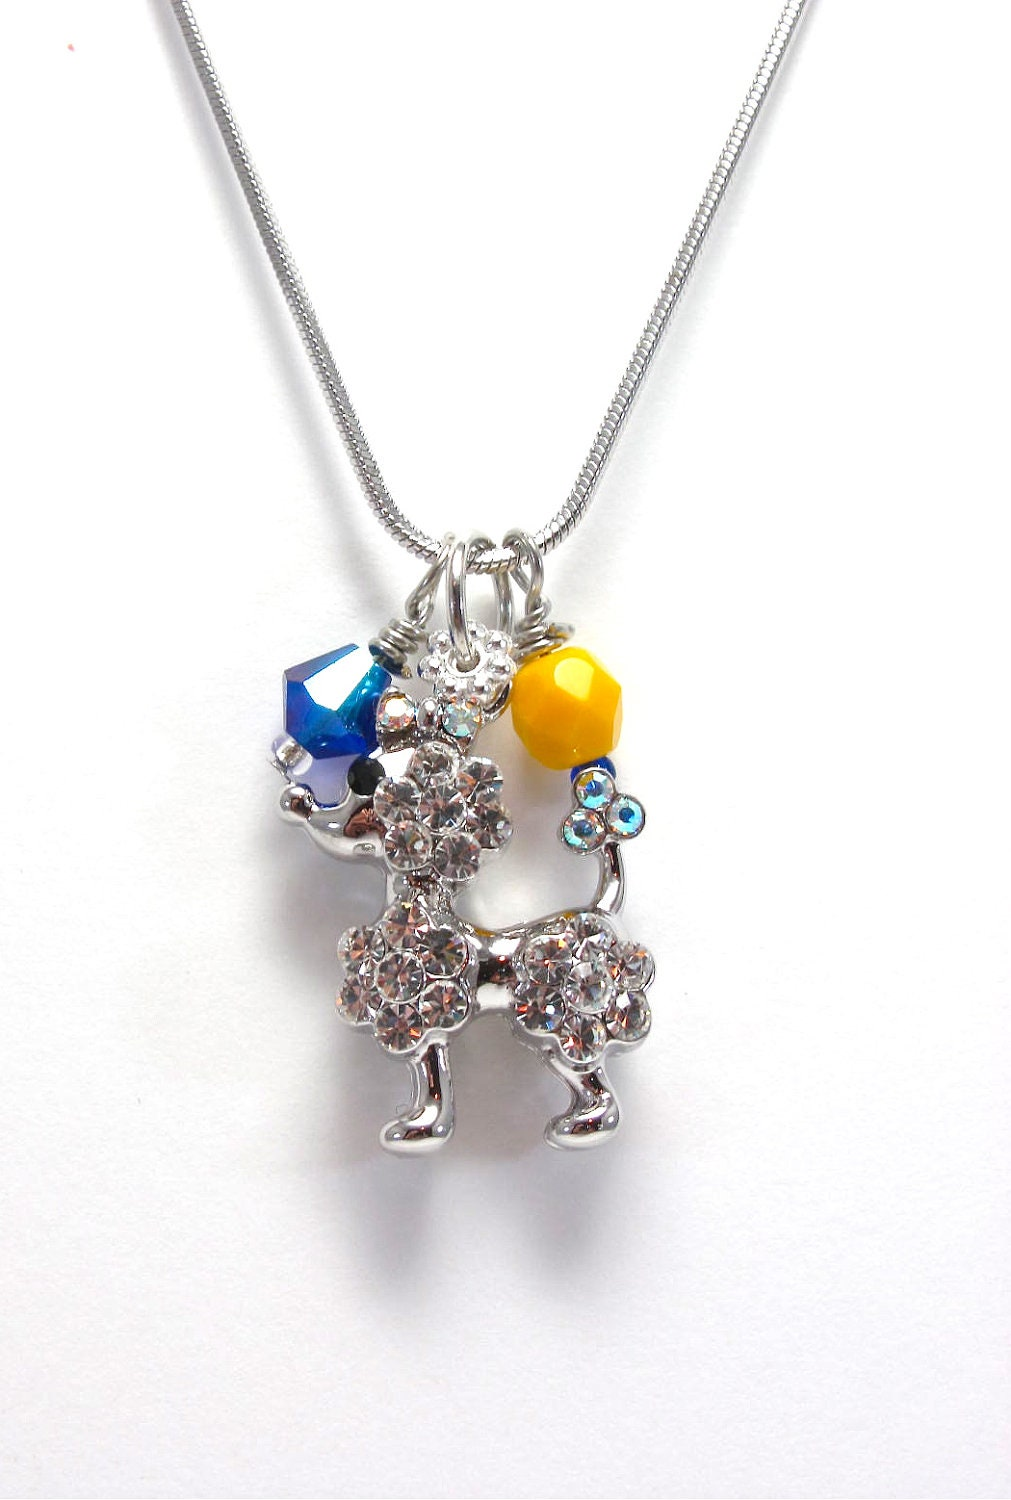 Photo Charm Necklace on Poodle Charm Necklace   Royal Blue And Gold Crystal Beaded Necklace